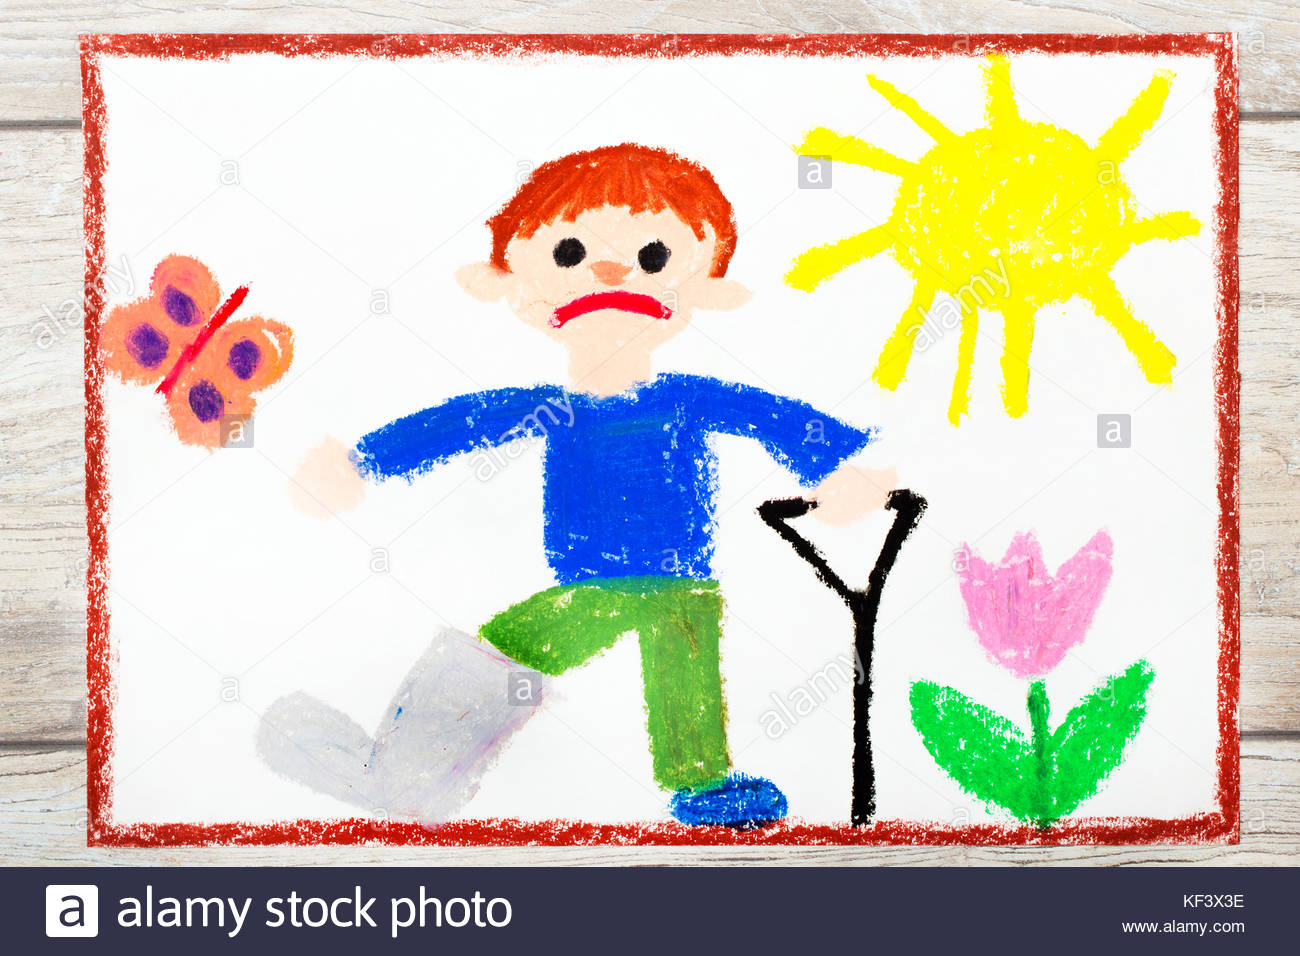 1300x956 Photo Of Colorful Drawing Sad Boy With Broken Leg Stock Photo